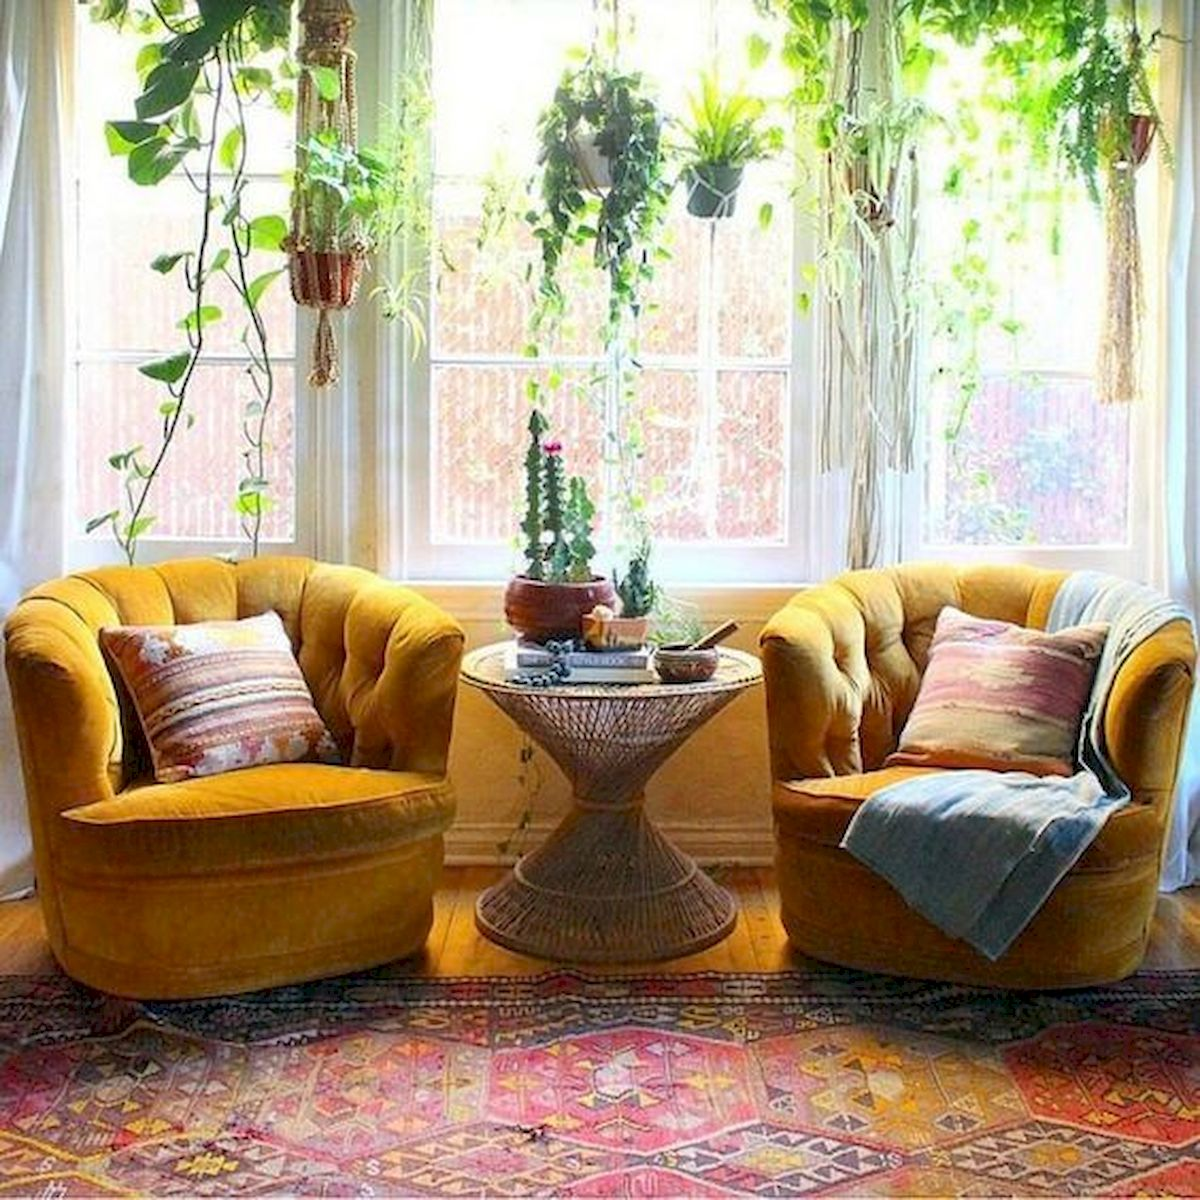 55 Bohemian Living Room Decor Ideas (33)